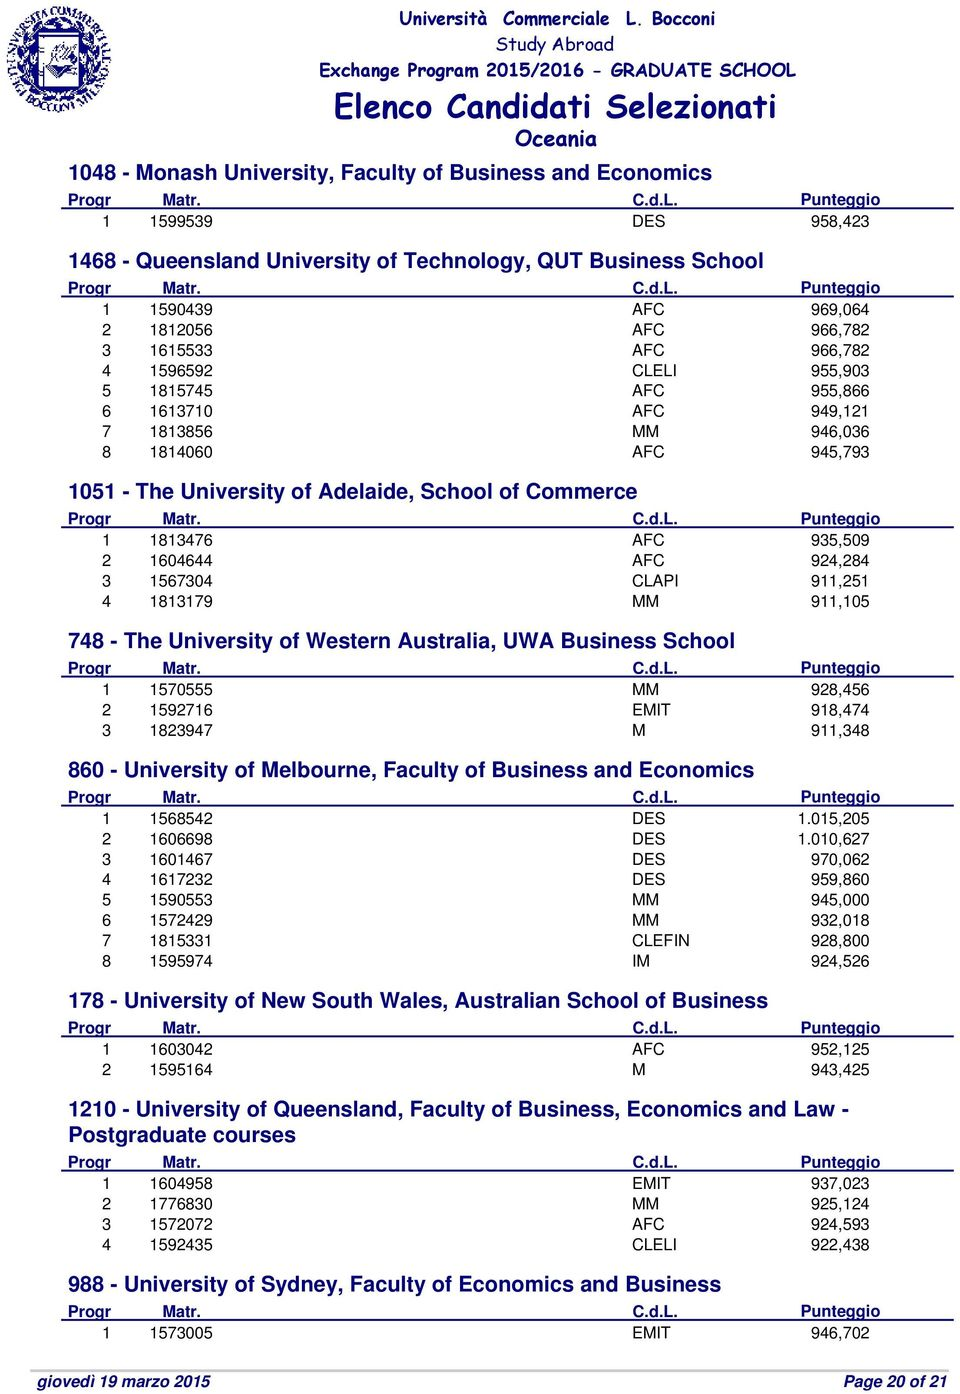 935,509 2 1604644 AFC 924,284 3 1567304 CLAPI 911,251 4 1813179 MM 911,105 748 - The University of Western Australia, UWA Business School 1 1570555 MM 928,456 2 1592716 EMIT 918,474 3 1823947 M